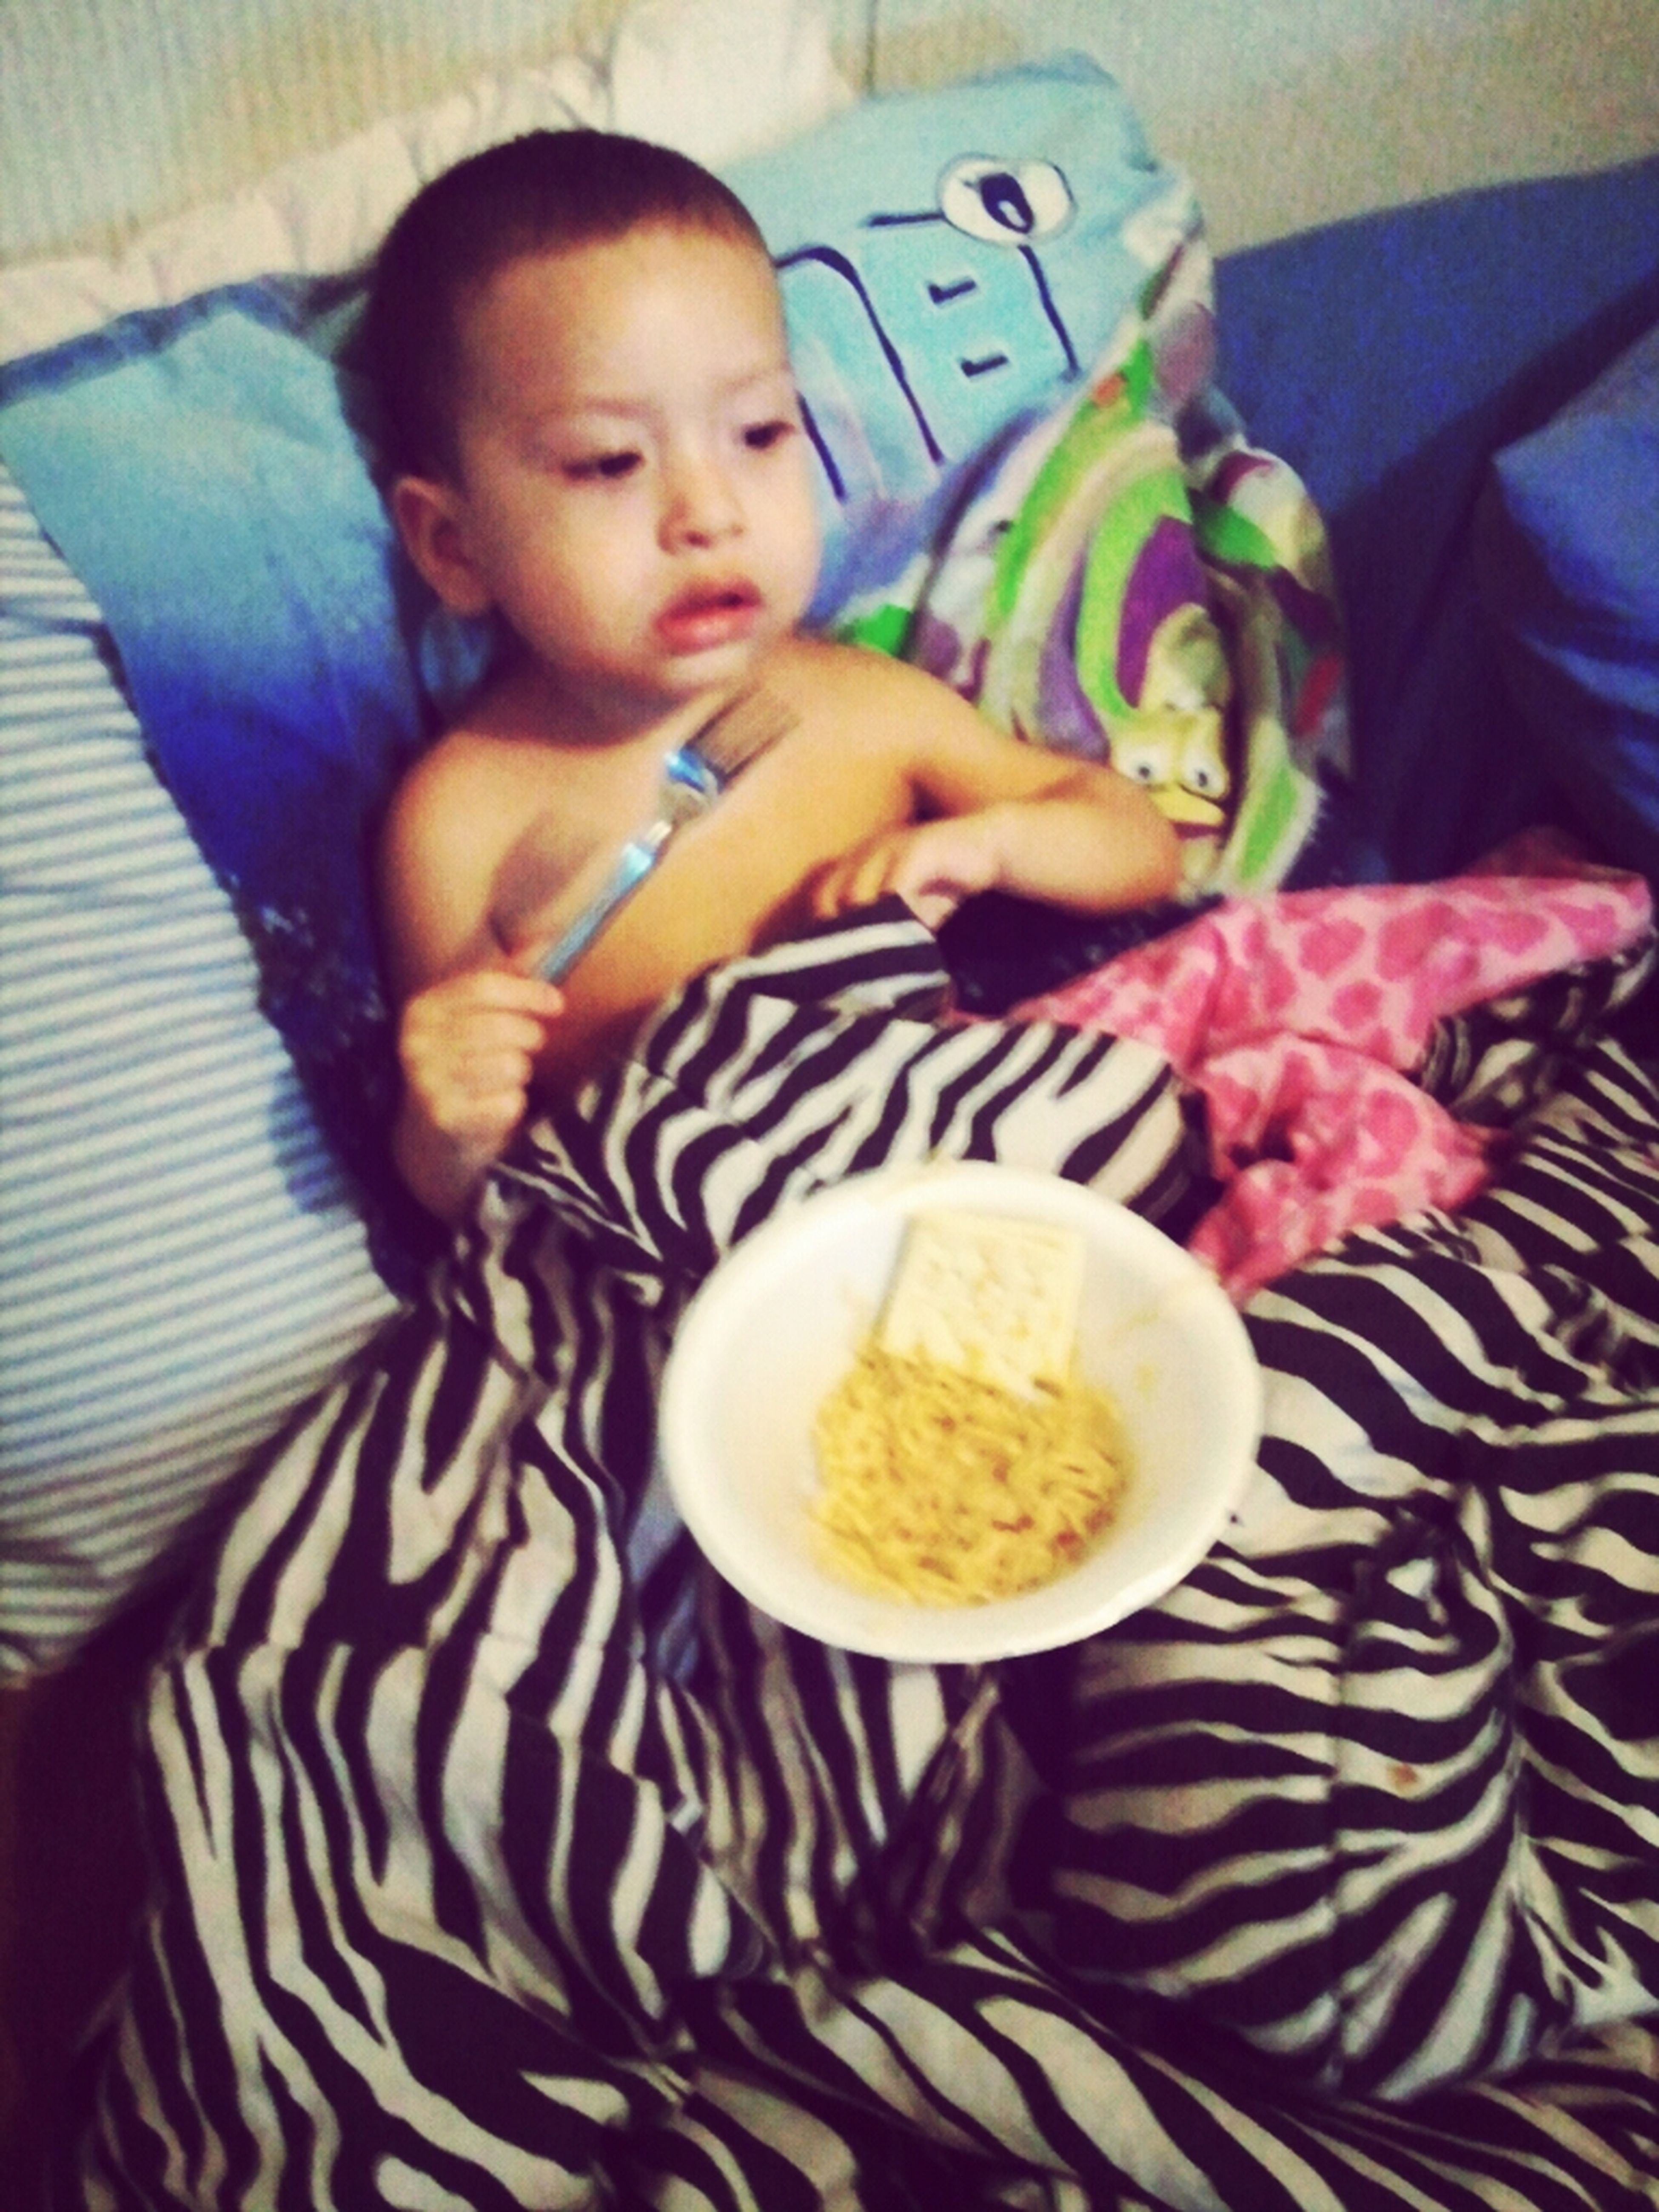 Noodles In Bed On His Sick Days